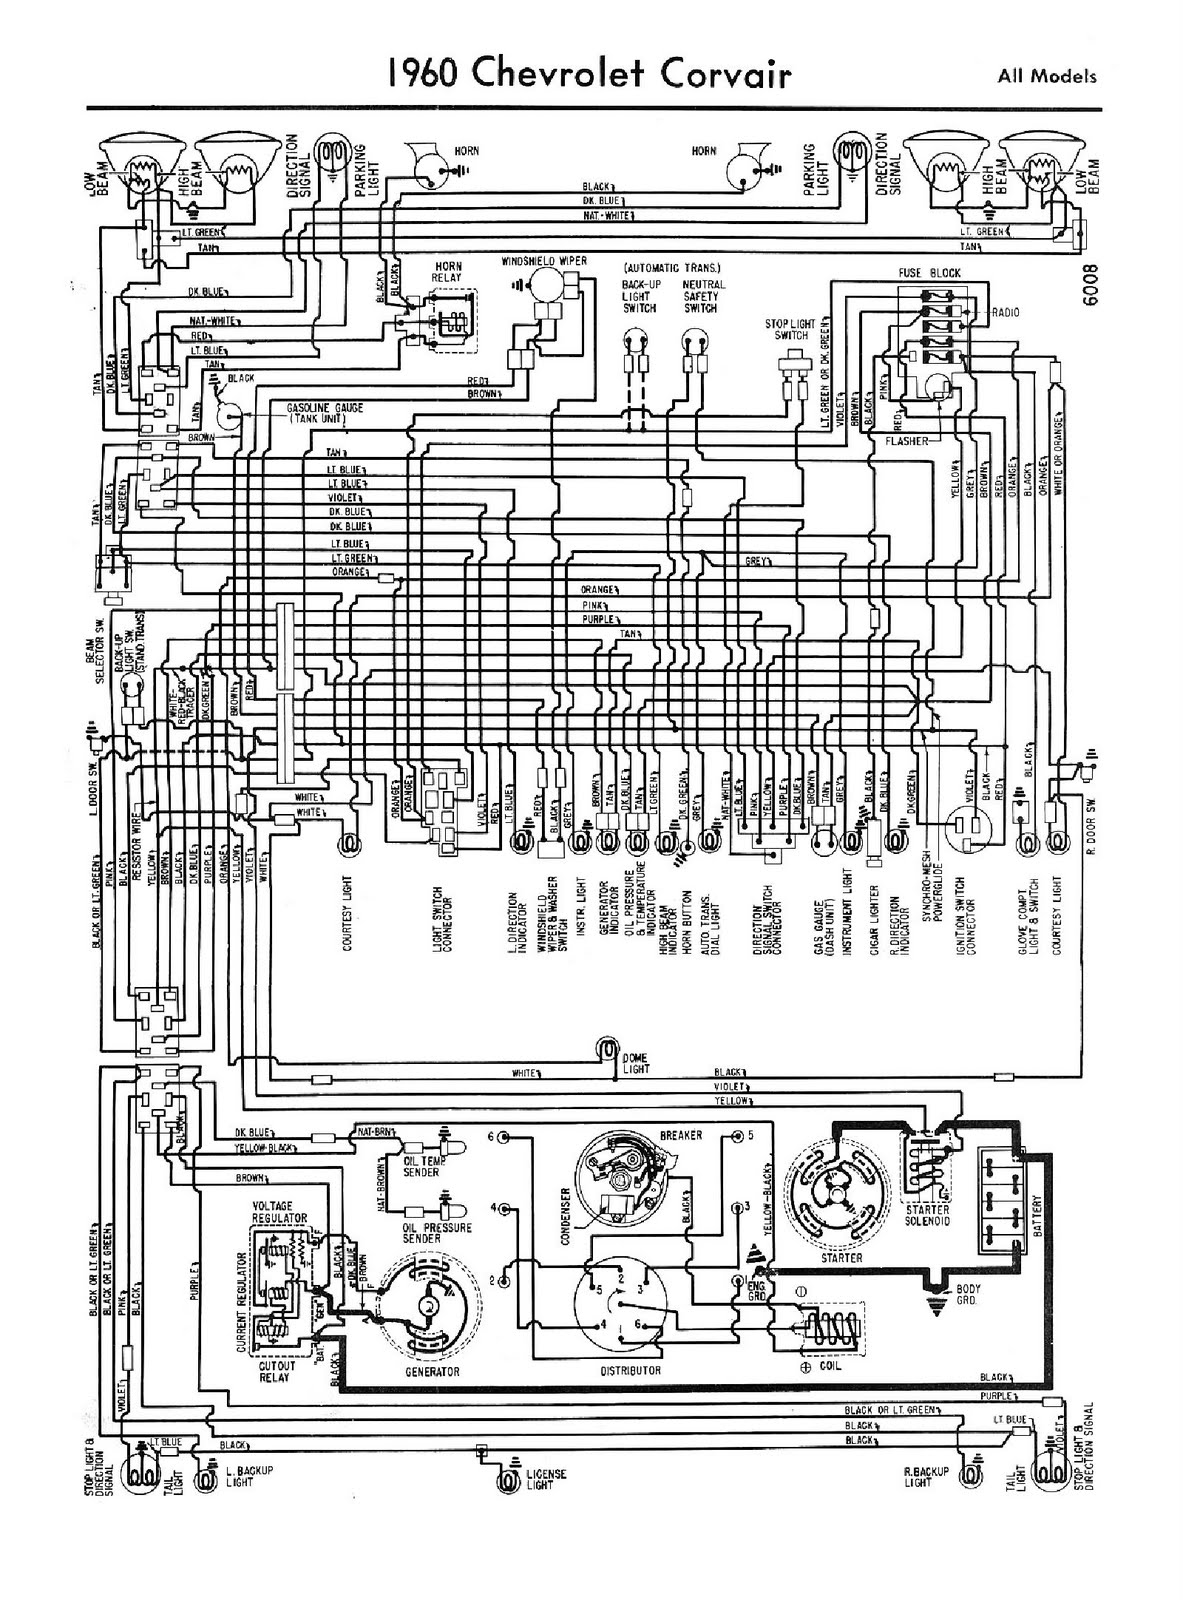 Free Chevy Truck Wiring Diagrams 1960 Impala Diagram For You Auto Chevrolet Corvair